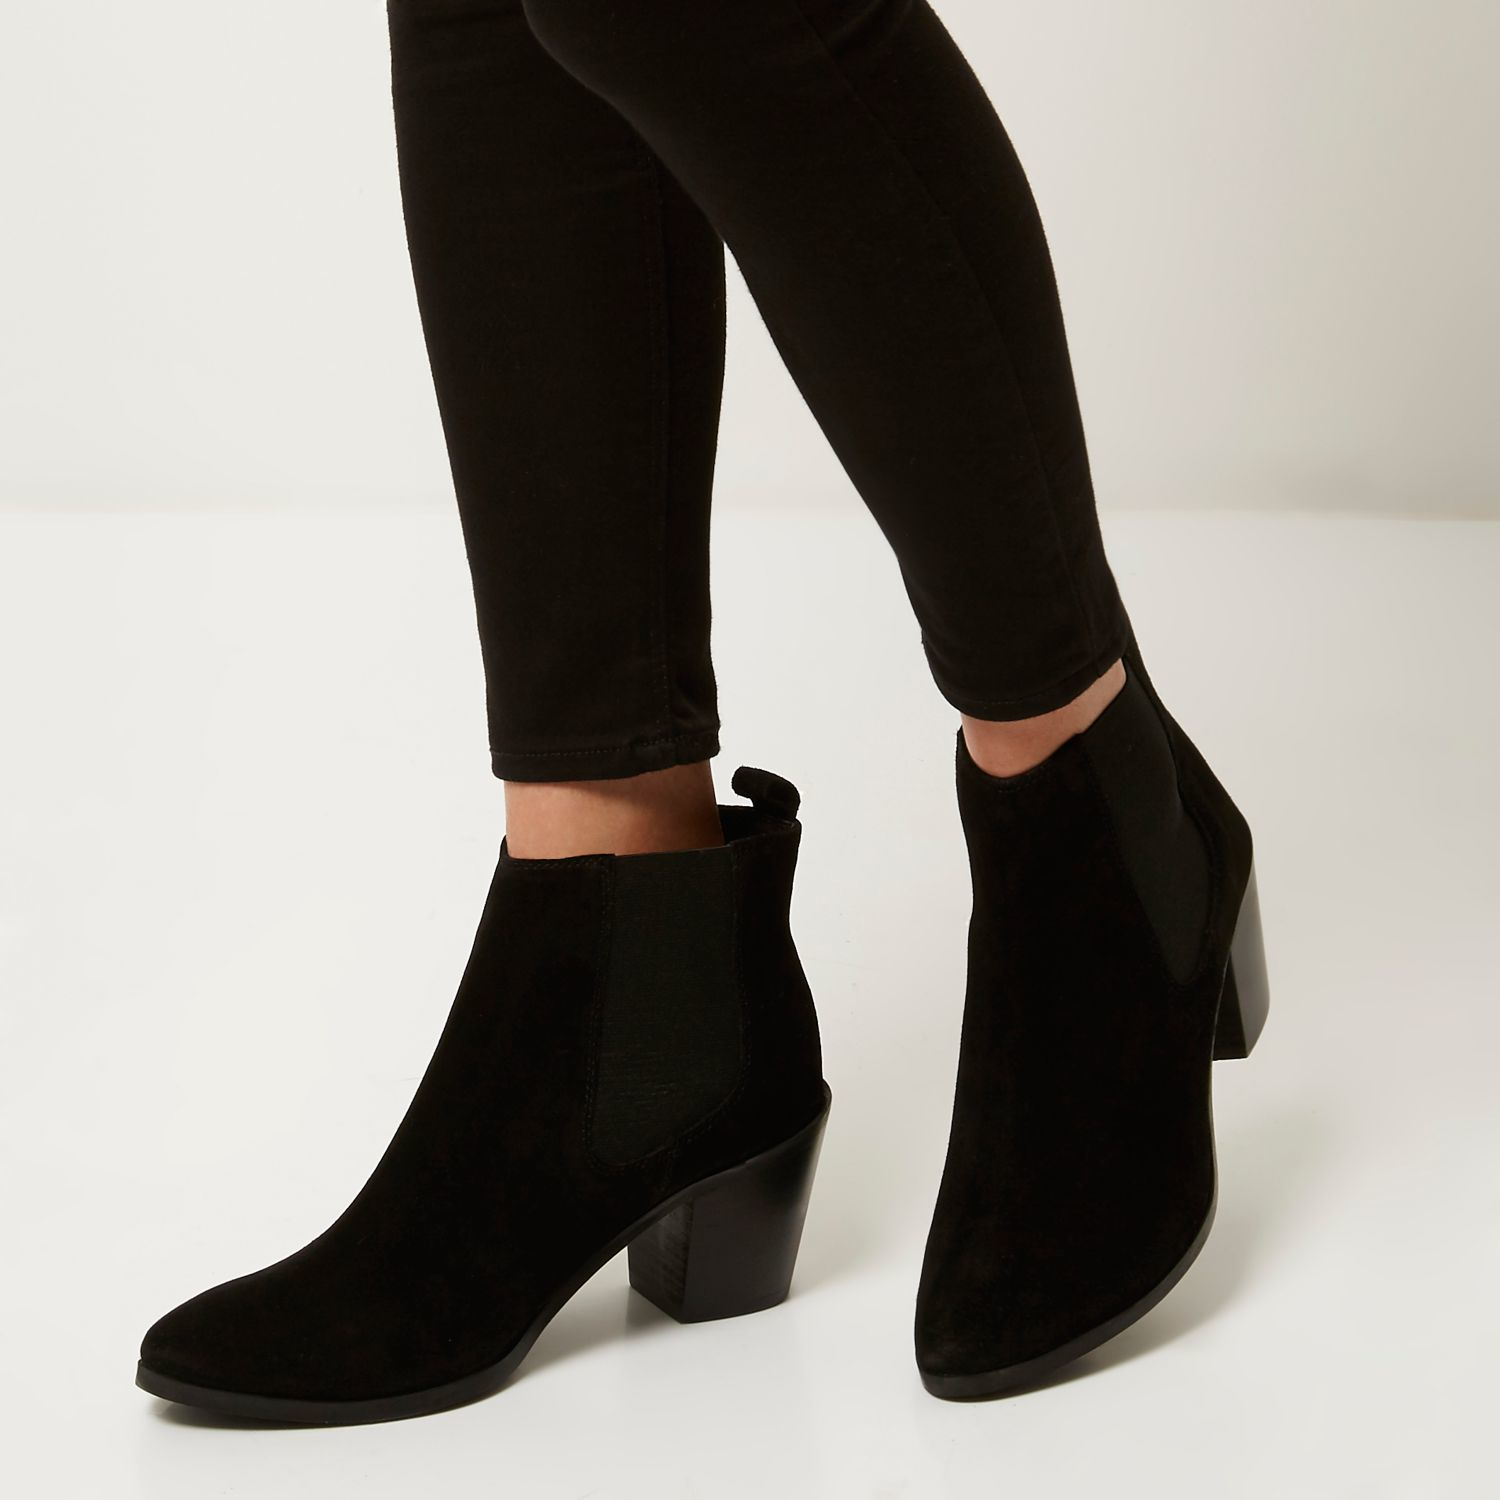 reasonably priced vast selection latest fashion River Island Black Suede Mid Heel Ankle Boots - Lyst